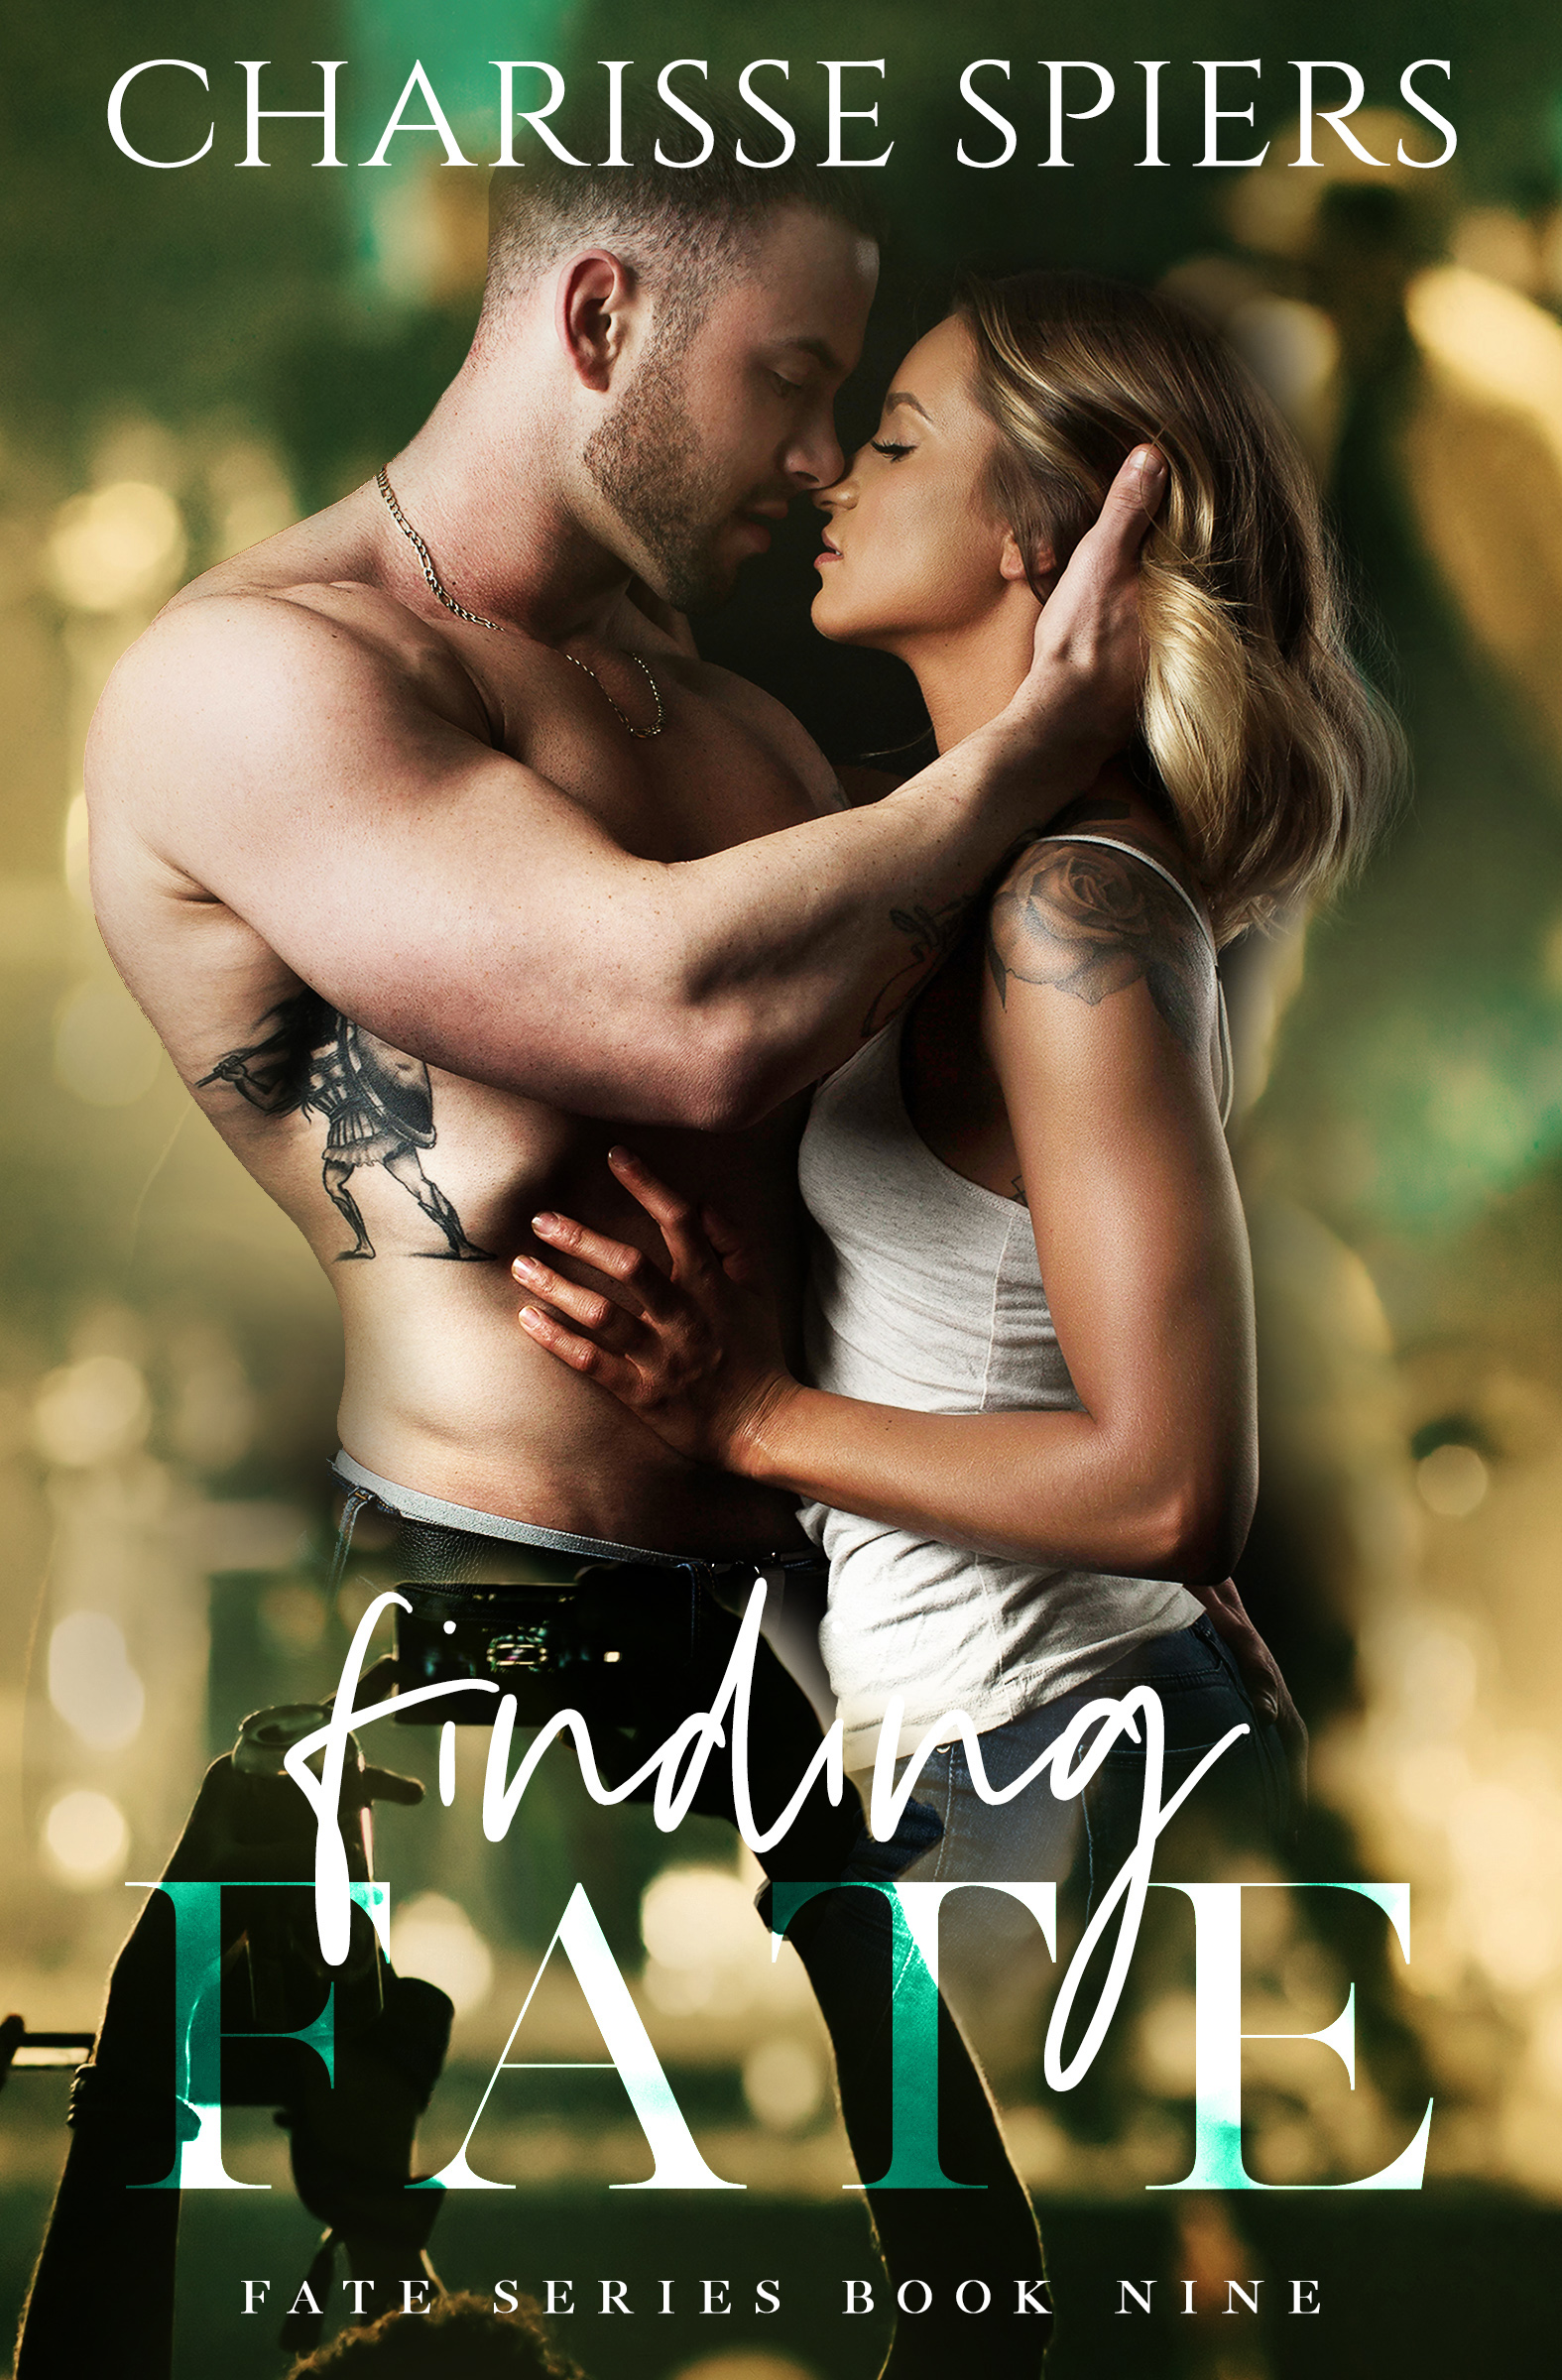 COMING 11.4.19! Add to your TBR on  Goodreads .